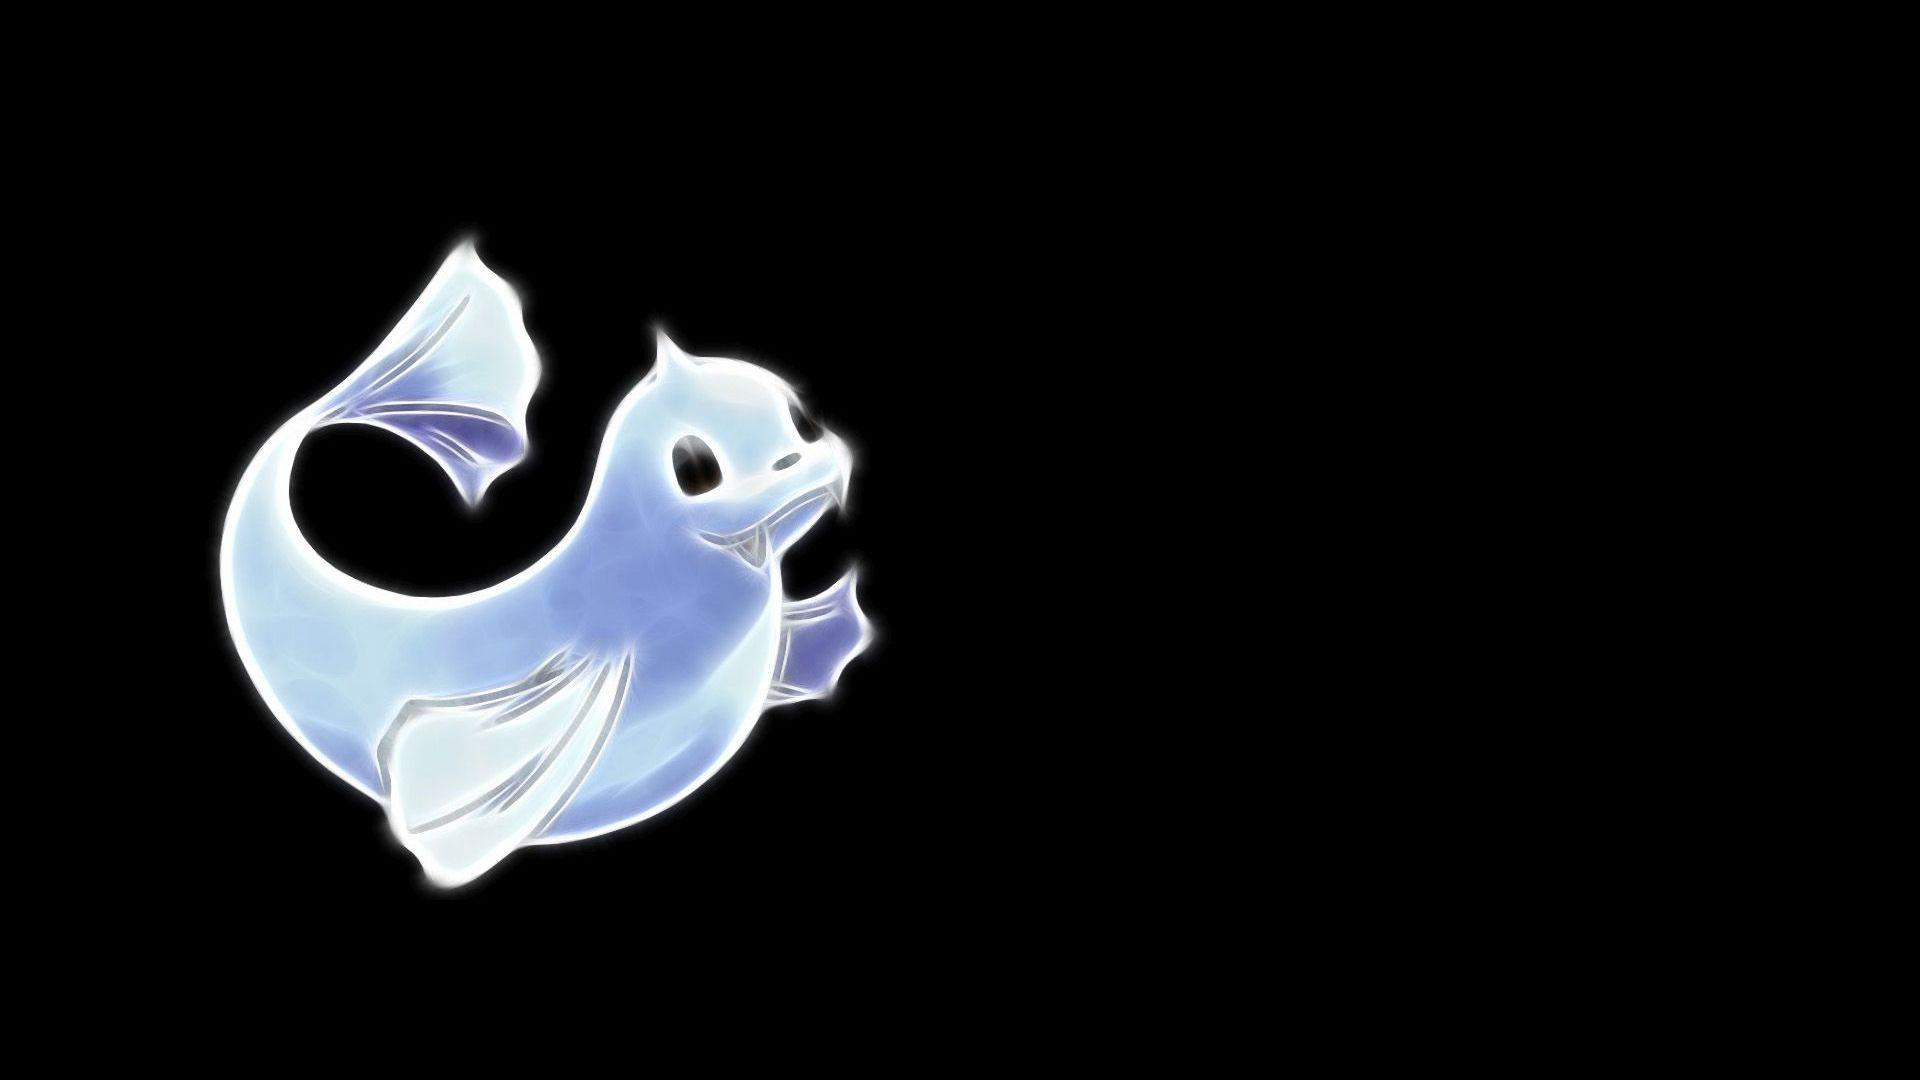 Dewgong - Pokemon Wallpaper #45722